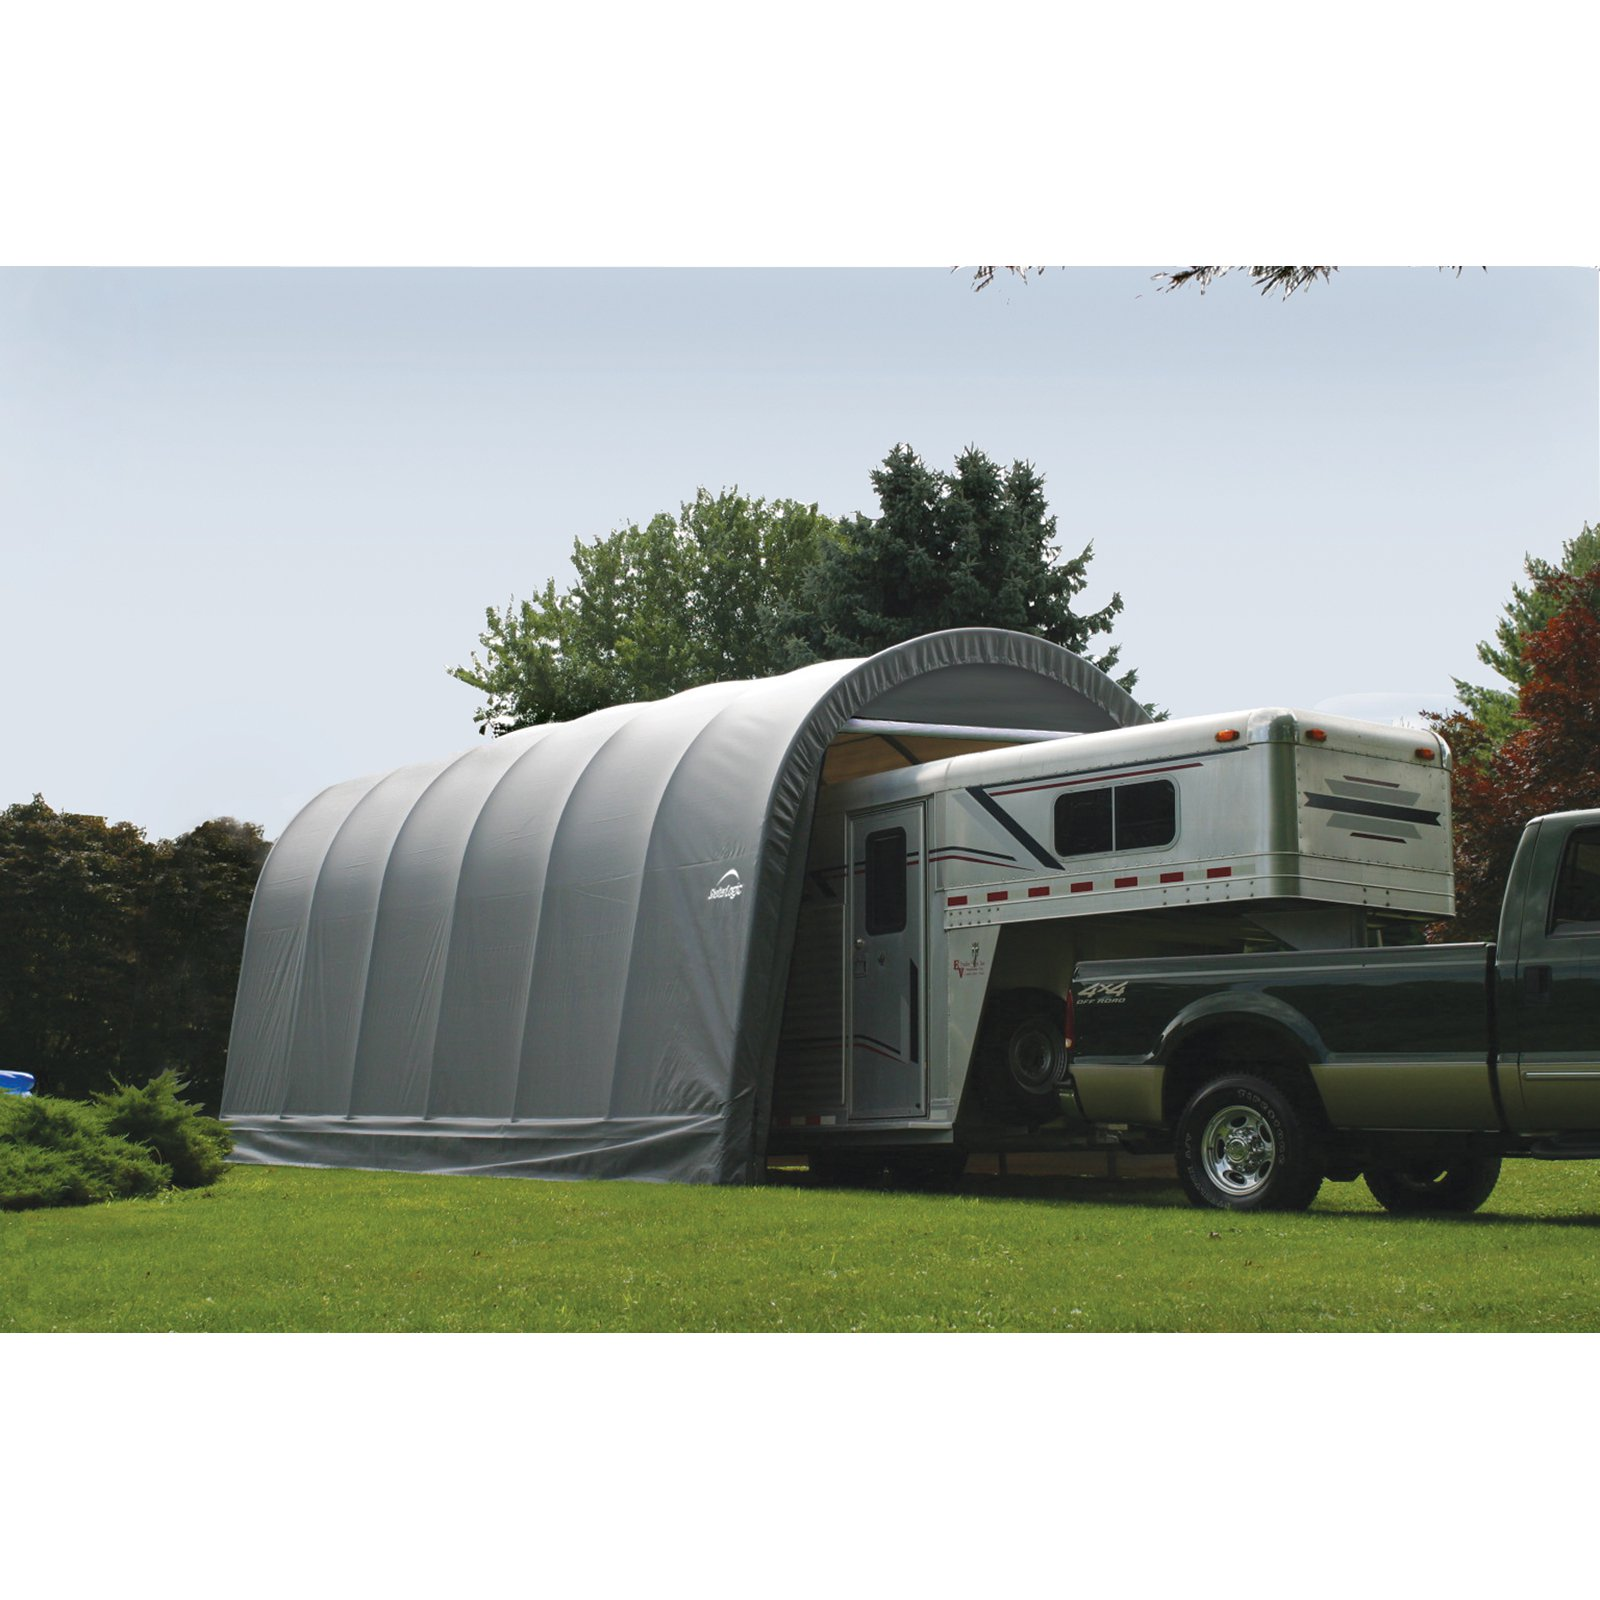 ShelterLogic 14' x 20' x 12' Round Style Shelter, Gray